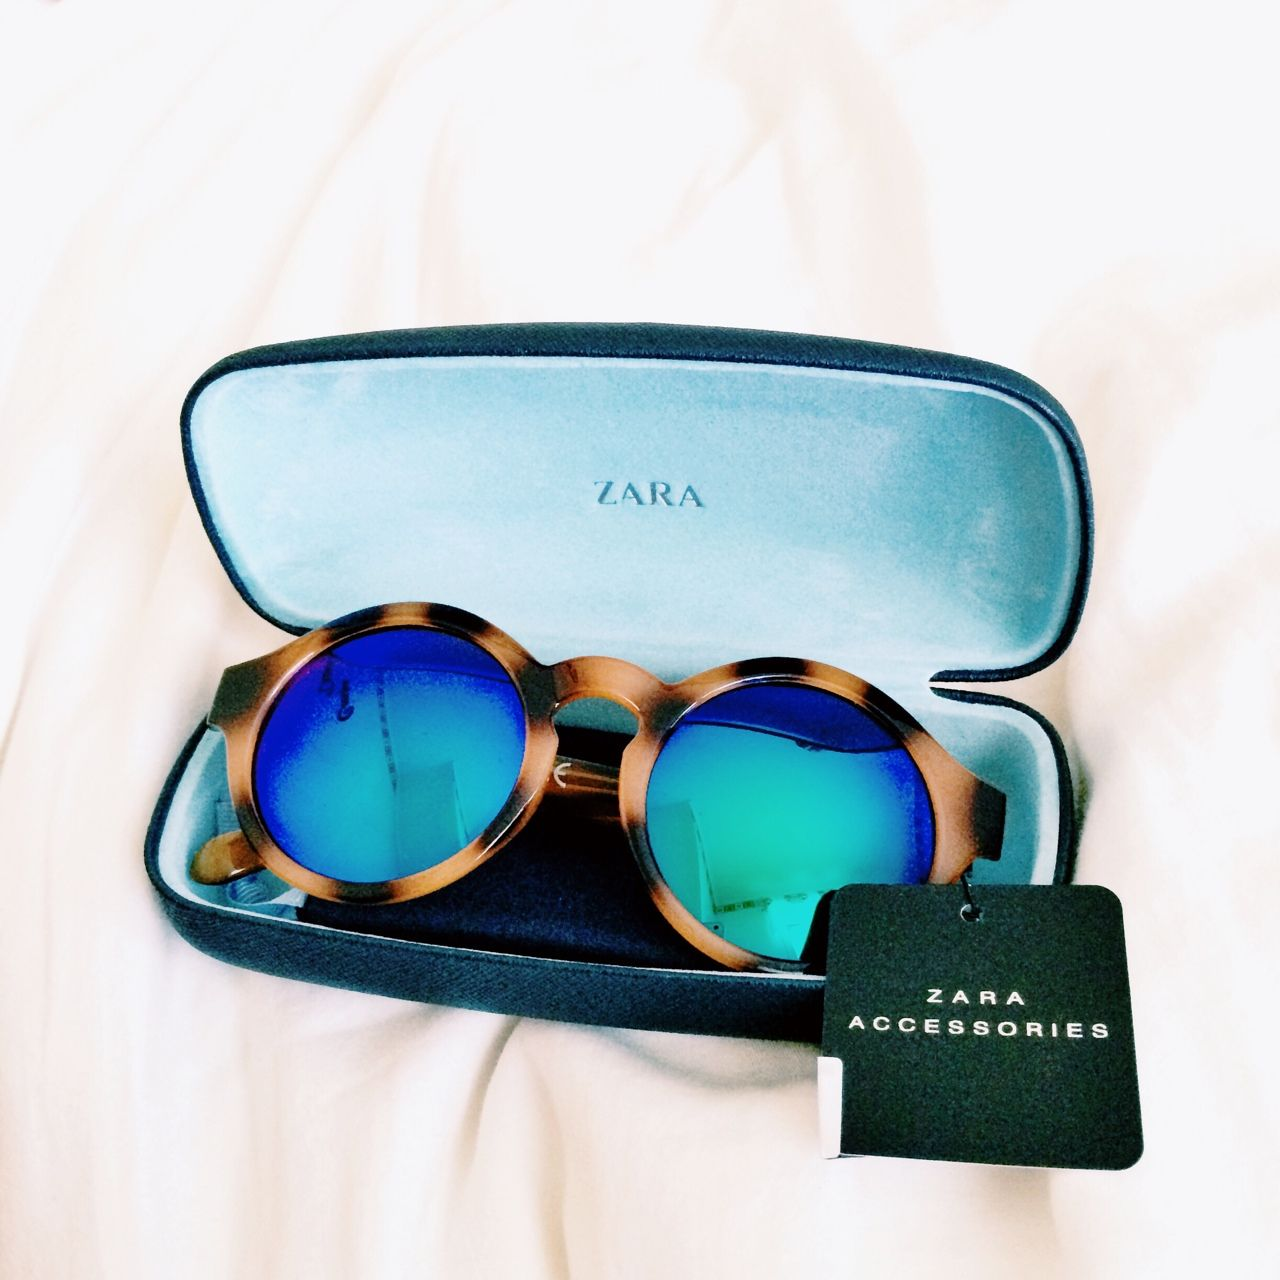 discount sunglasses ray ban  great sunglasses!